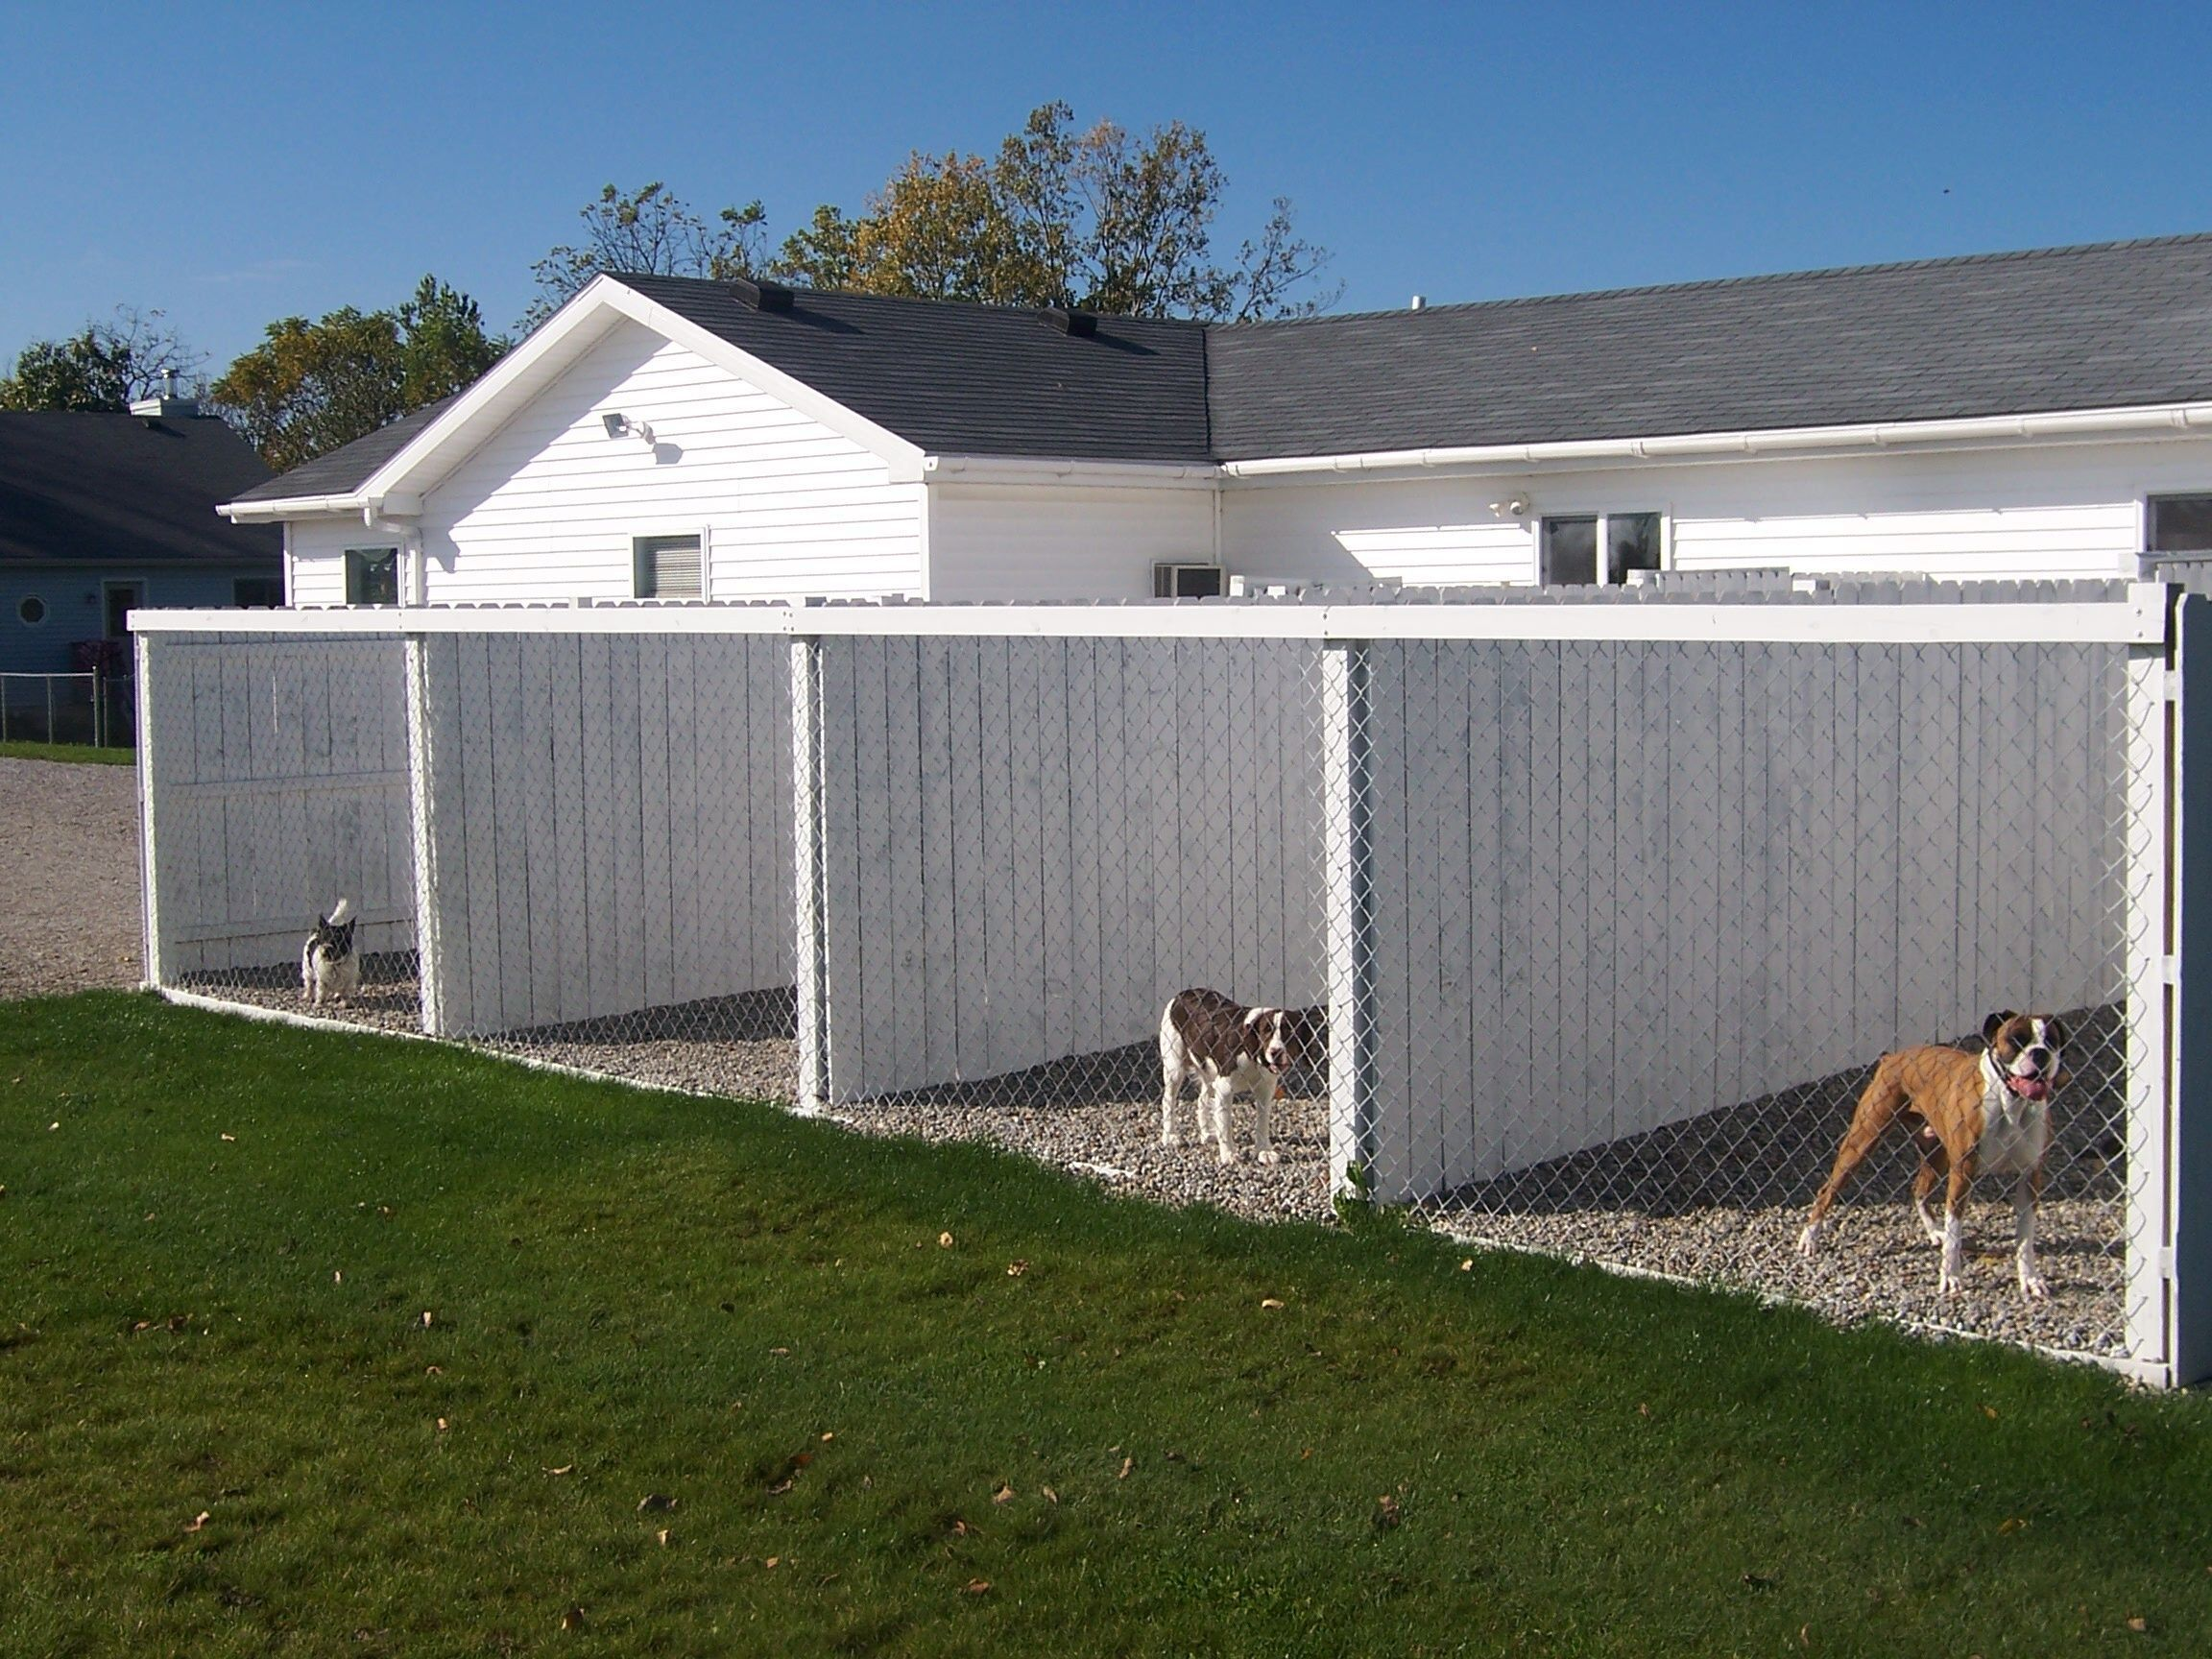 Dog Runs Then Connected To Land Where They Have Room To Run And Play Dogrun Dog Boarding Kennels Dog Kennel Designs Dog Kennel Flooring